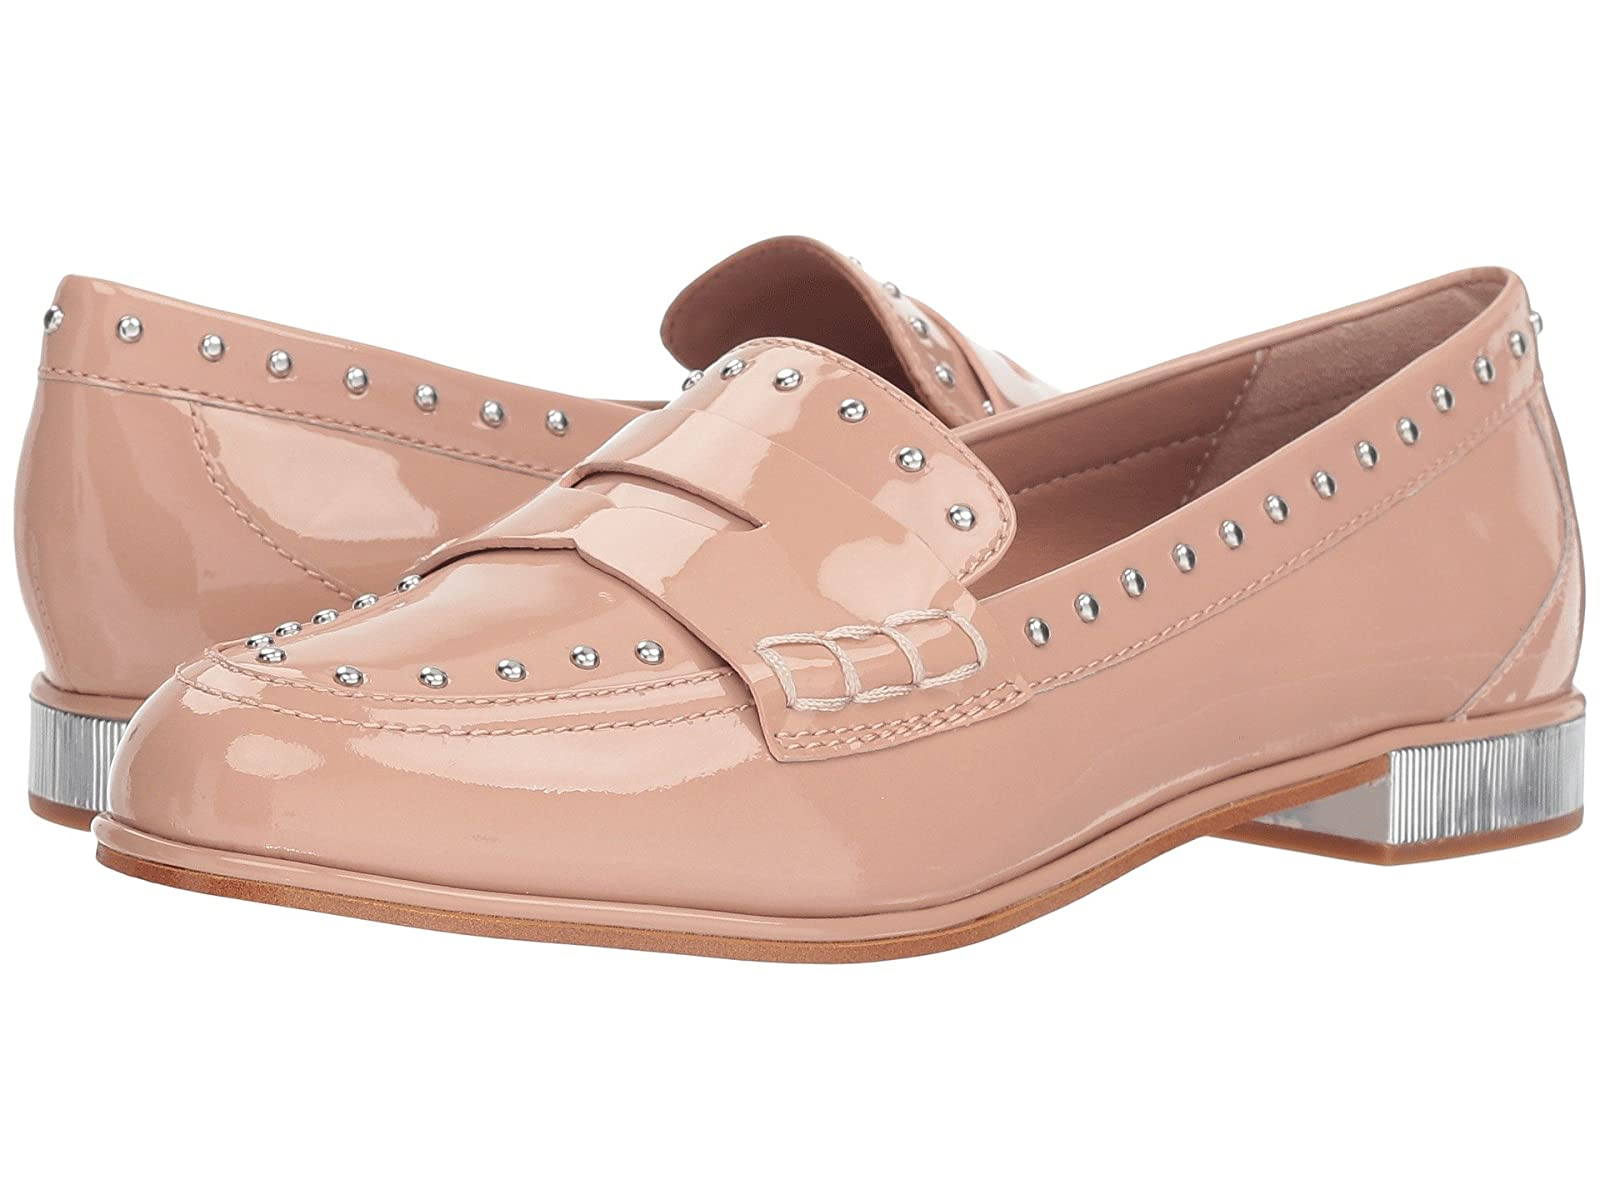 Donna Karan YorkAtmospheric grades have affordable shoes